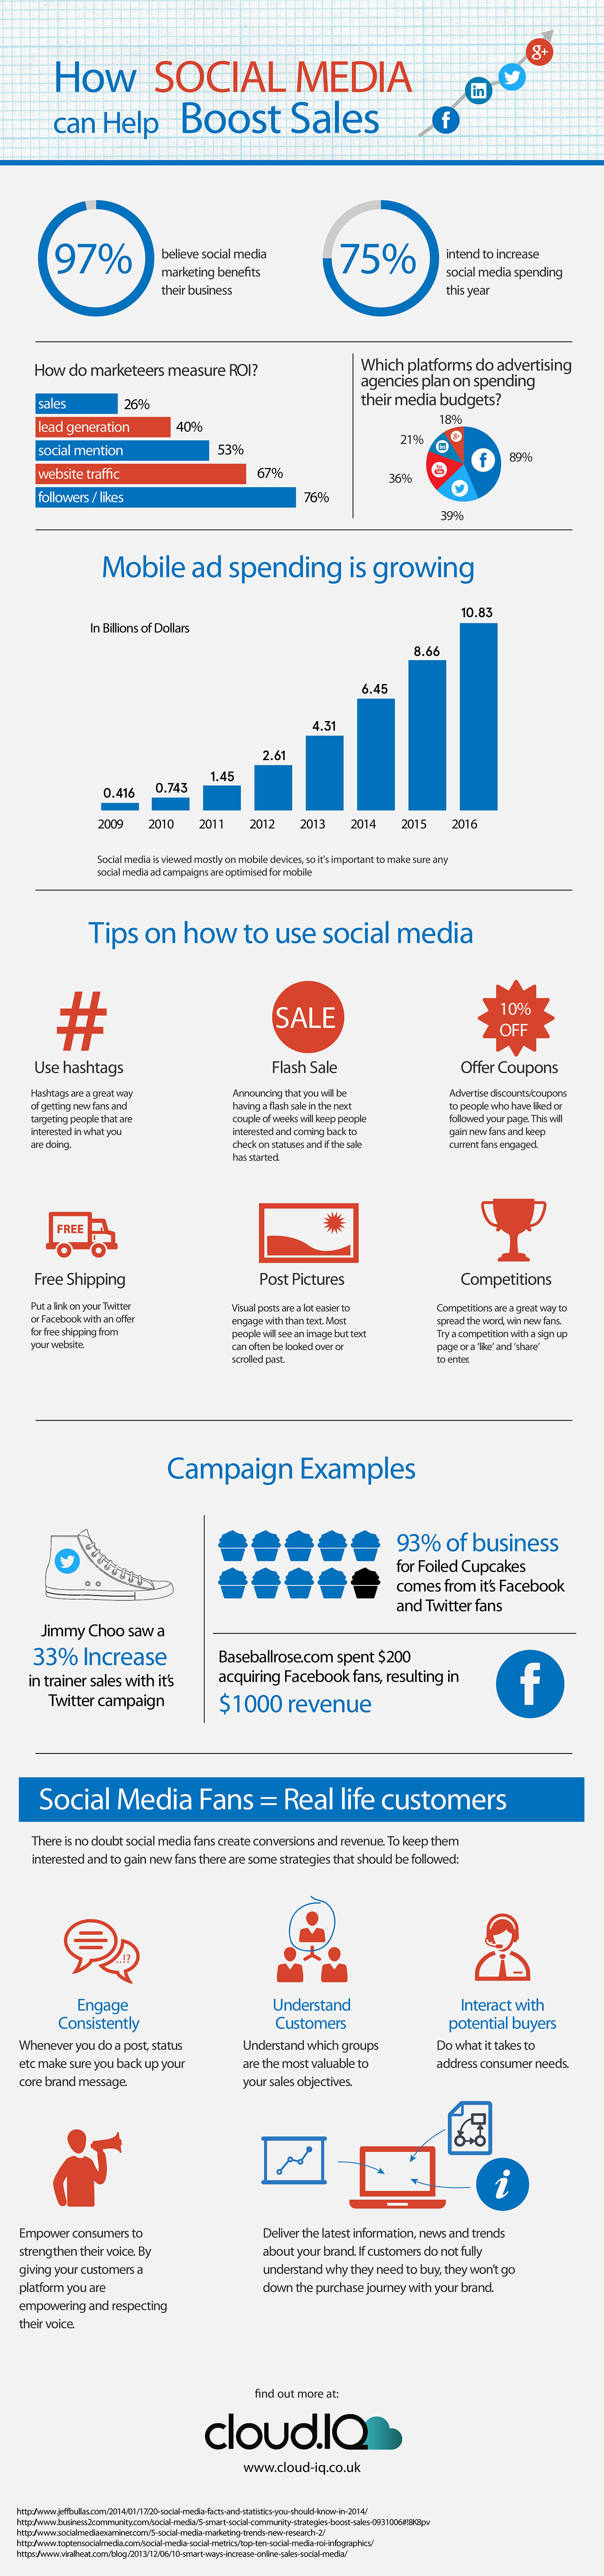 How Social Media Can Help Boost Sales Infographic